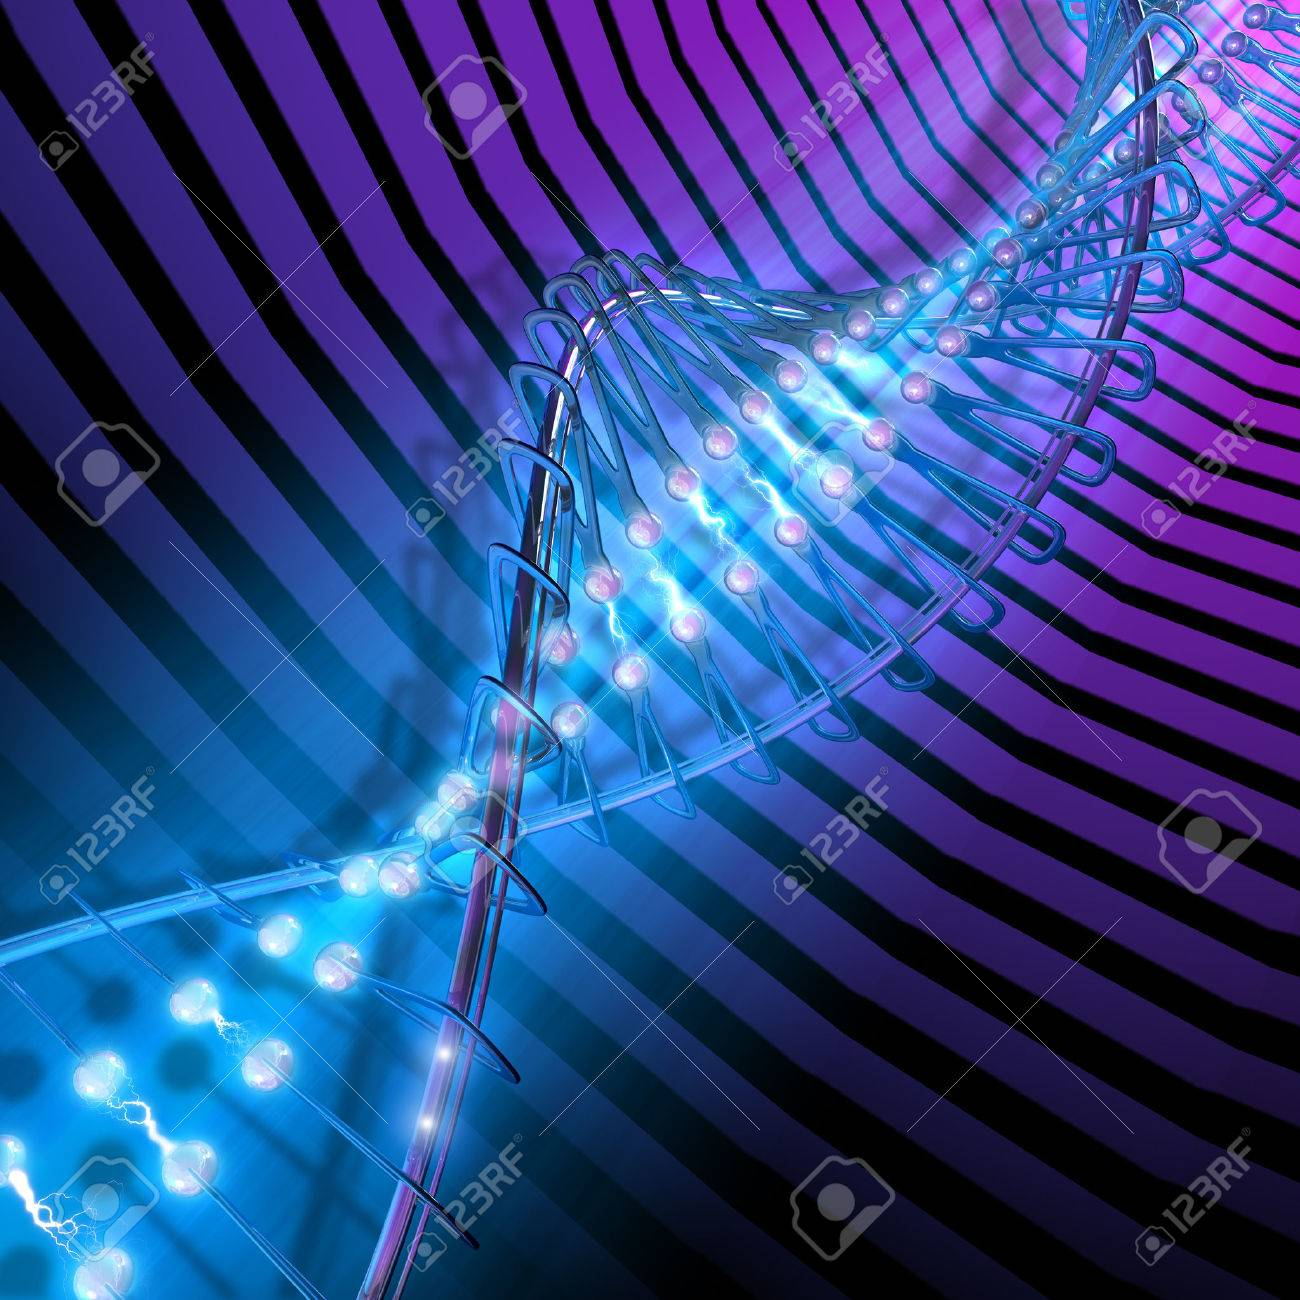 Concept of DNA mixing organism + mechanism + electronics. The science of the future, mixing humans with digital components. Stock Photo - 1412384